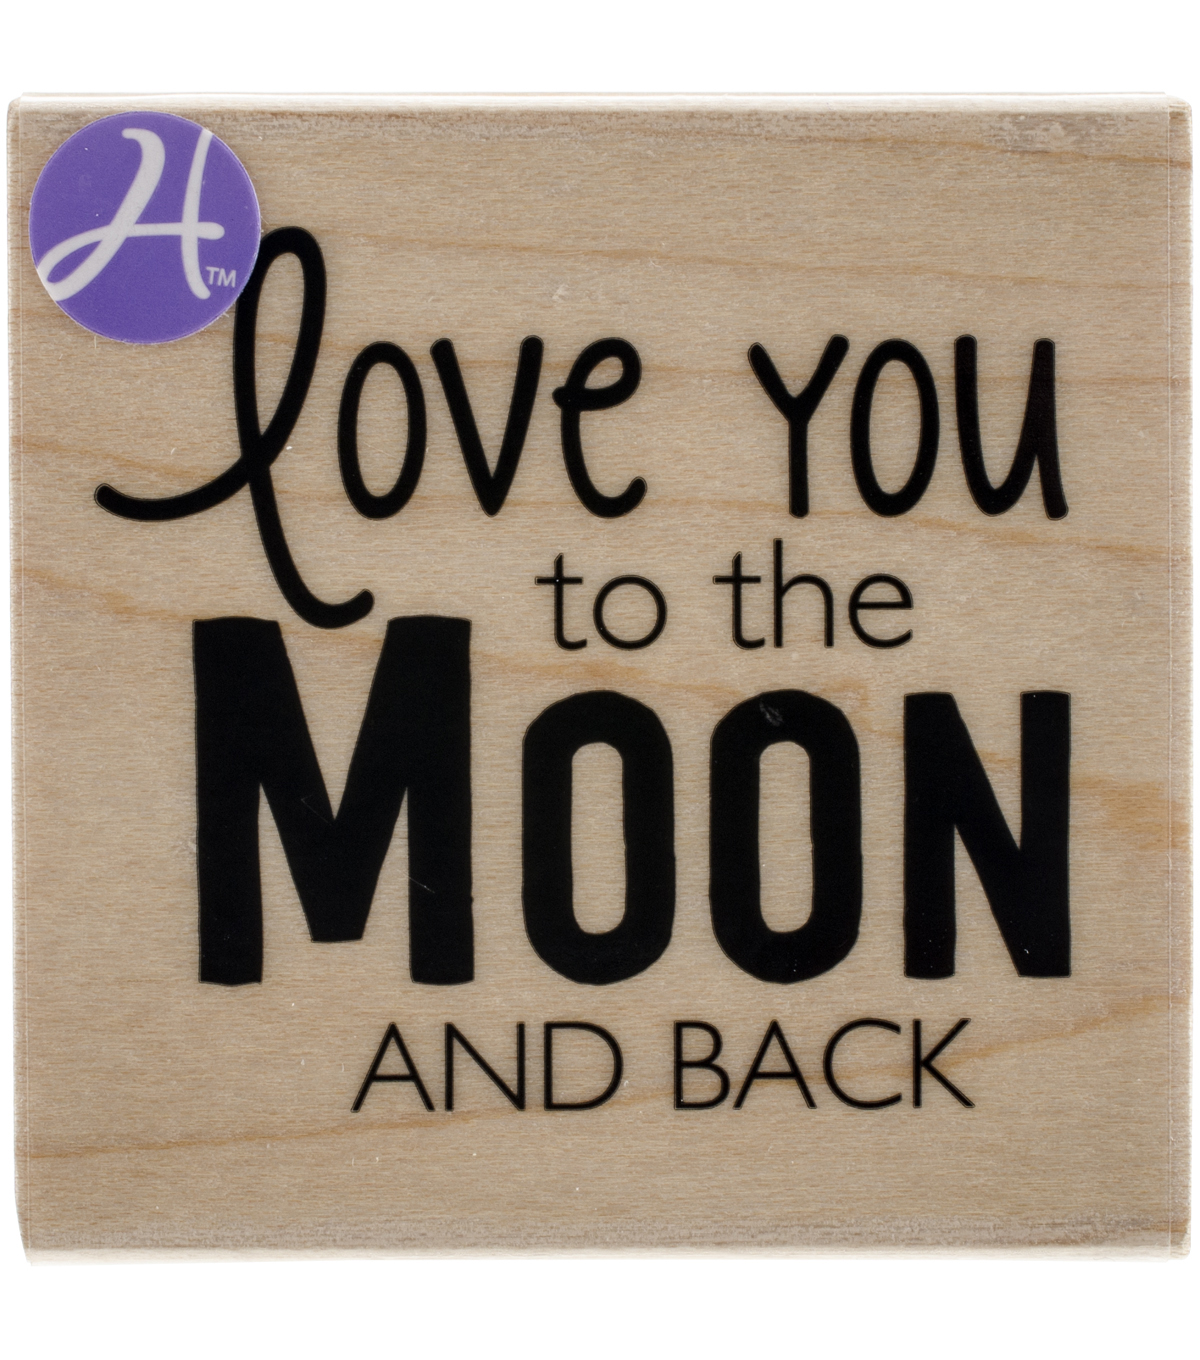 Hampton Art To The Moon & Back Mounted Rubber Stamp